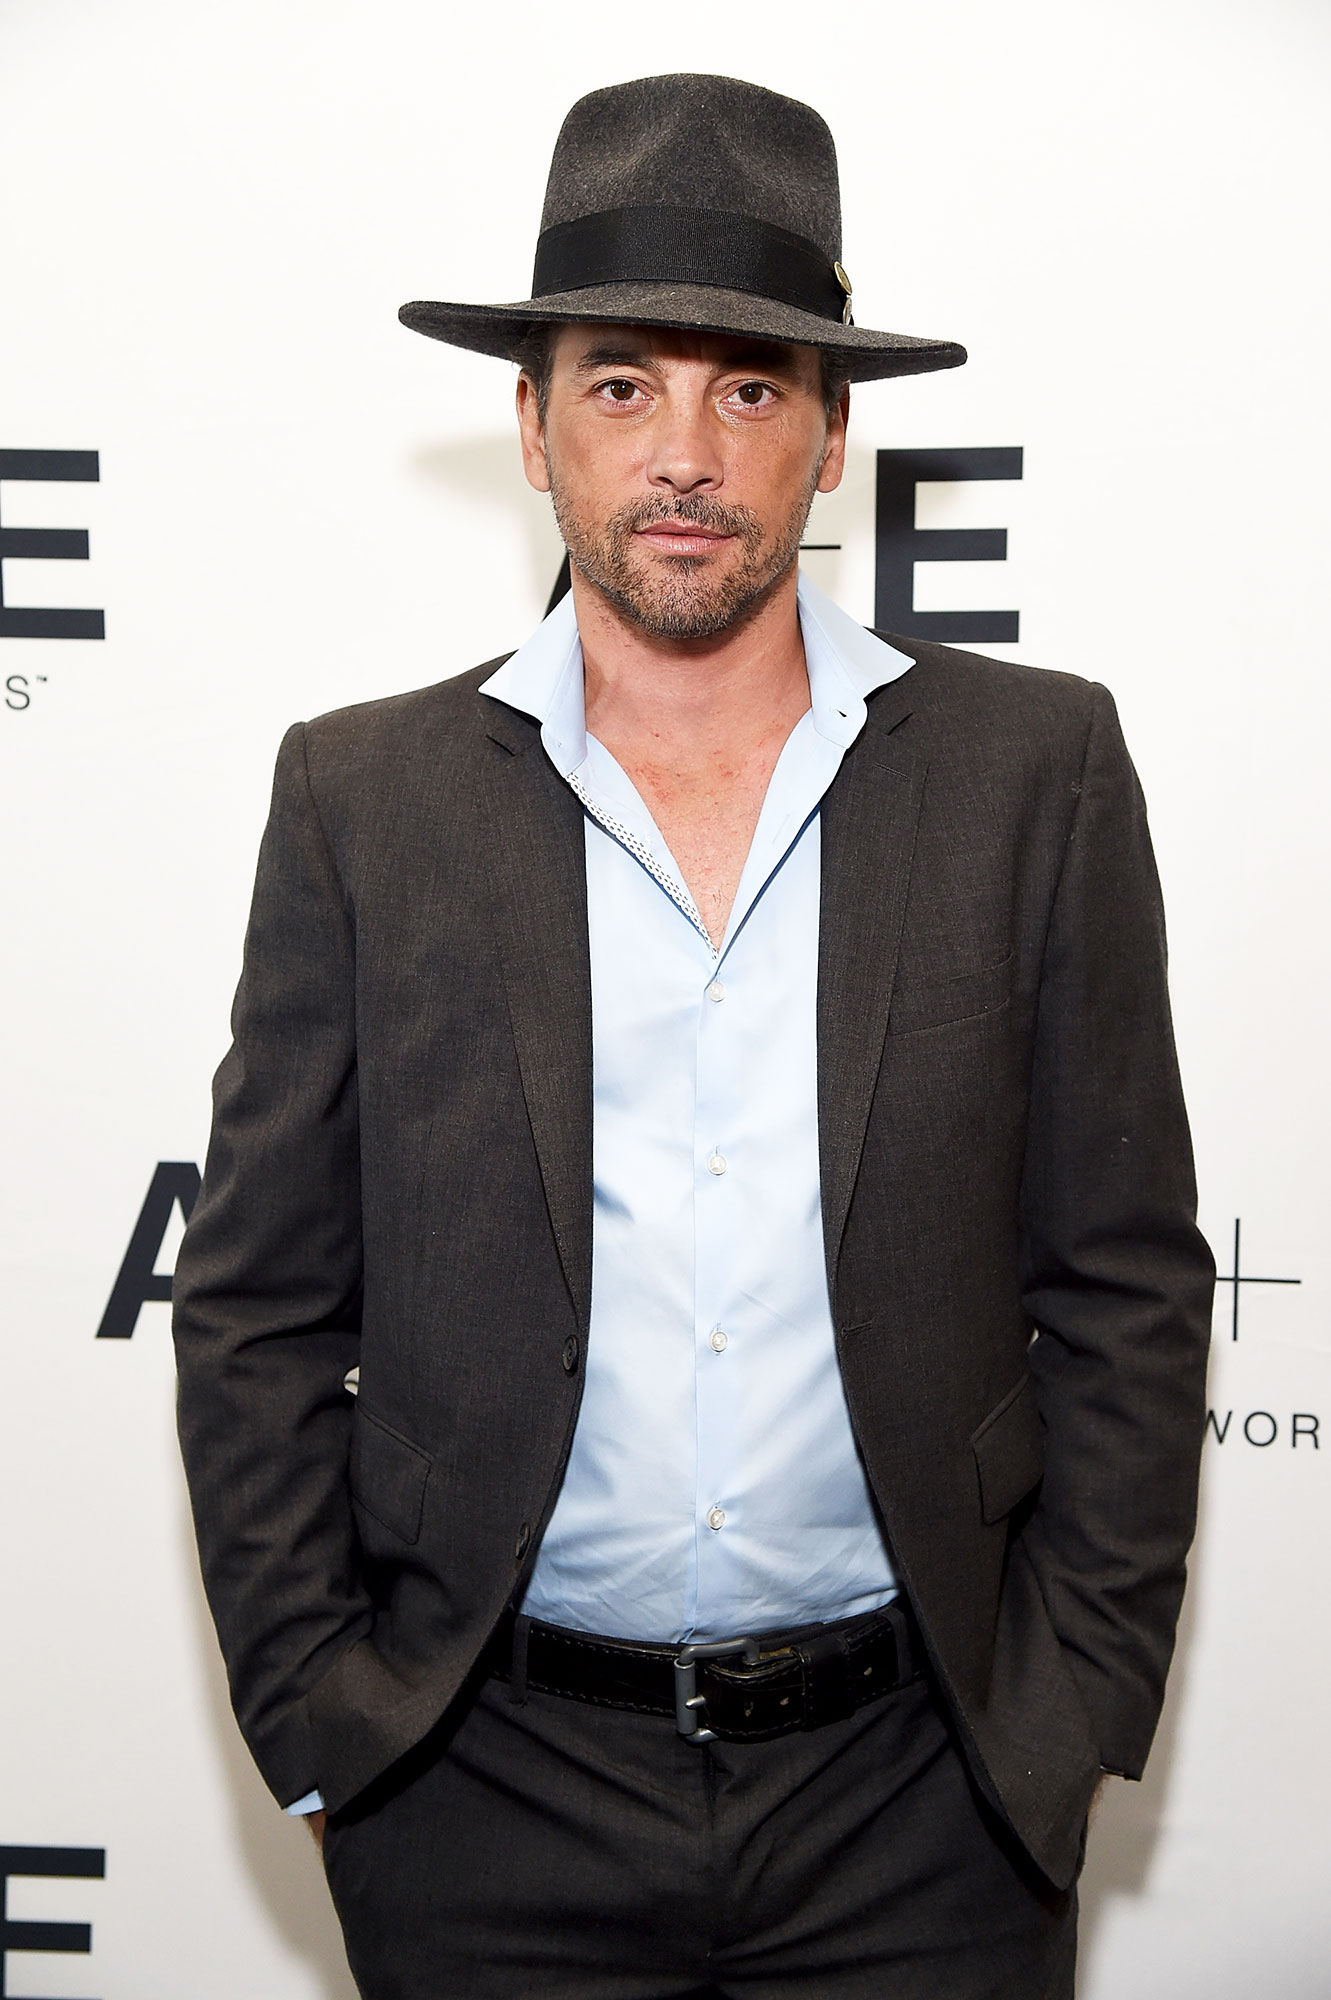 Skeet Ulrich: 25 Things You Don't Know About Me